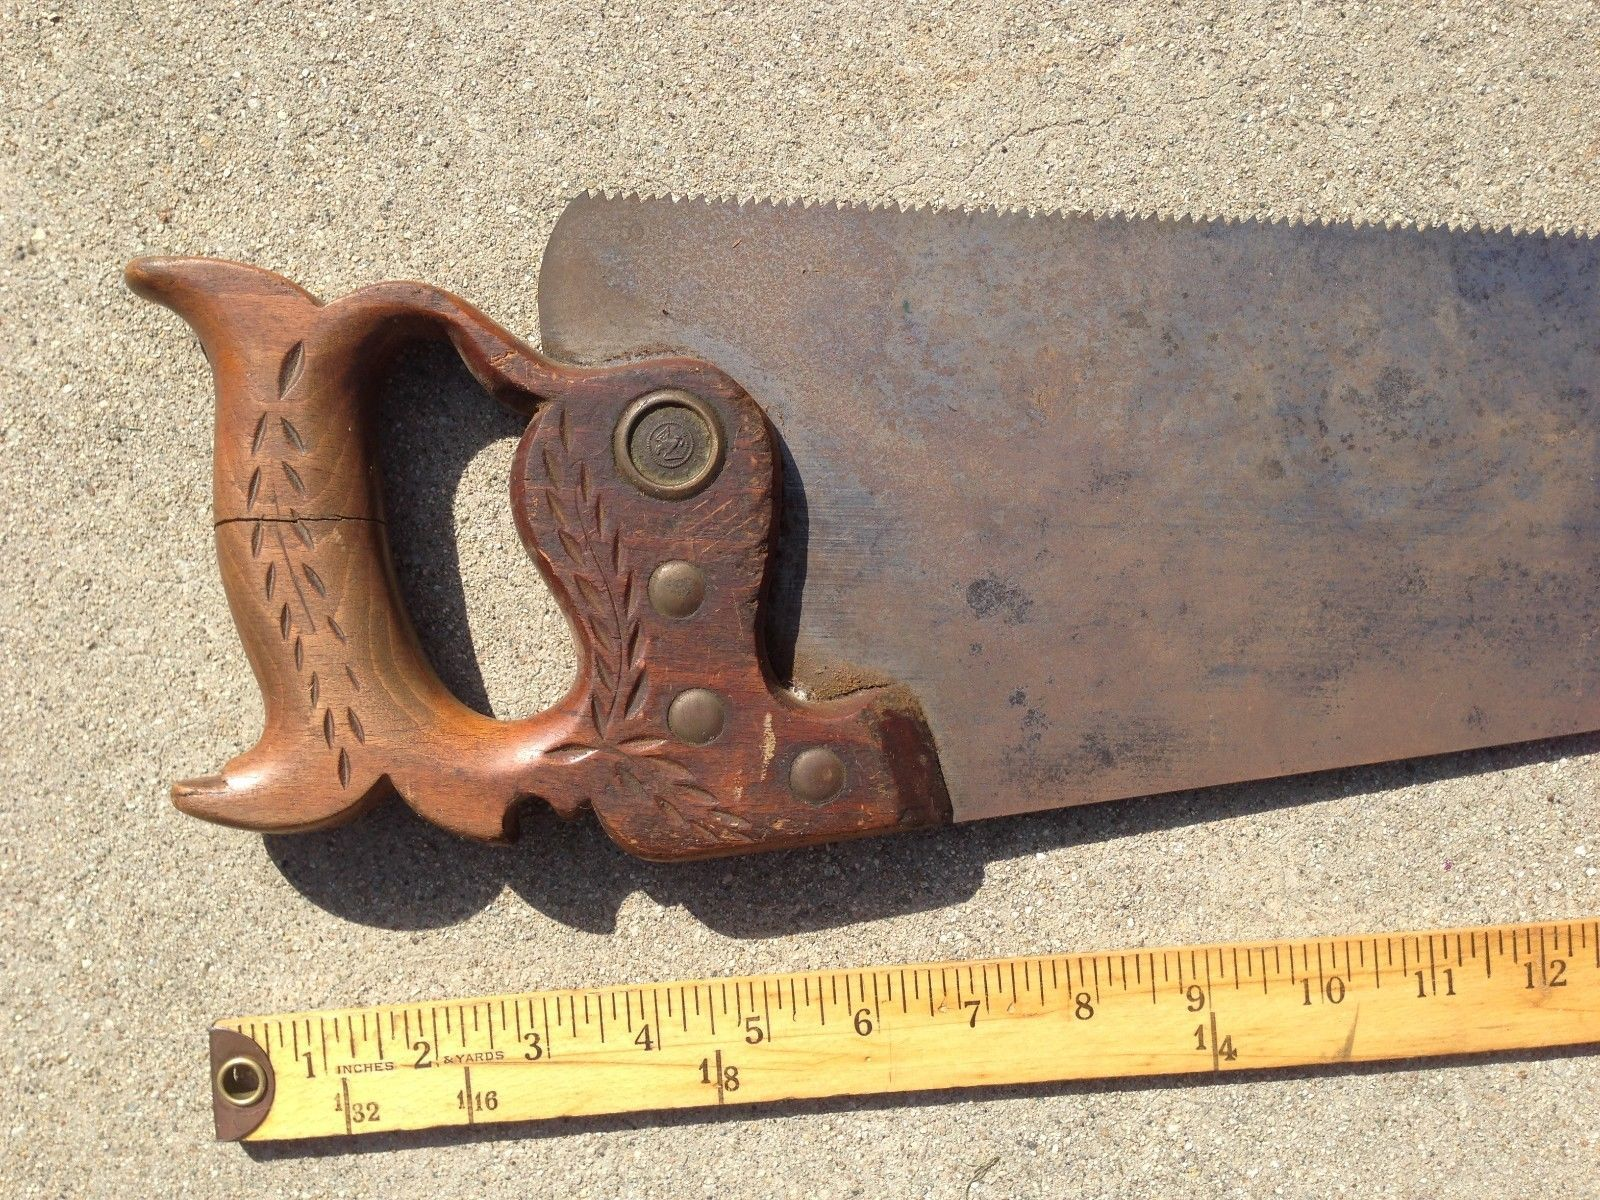 ANTIQUE Warranted Superior Hand Saw Collectible